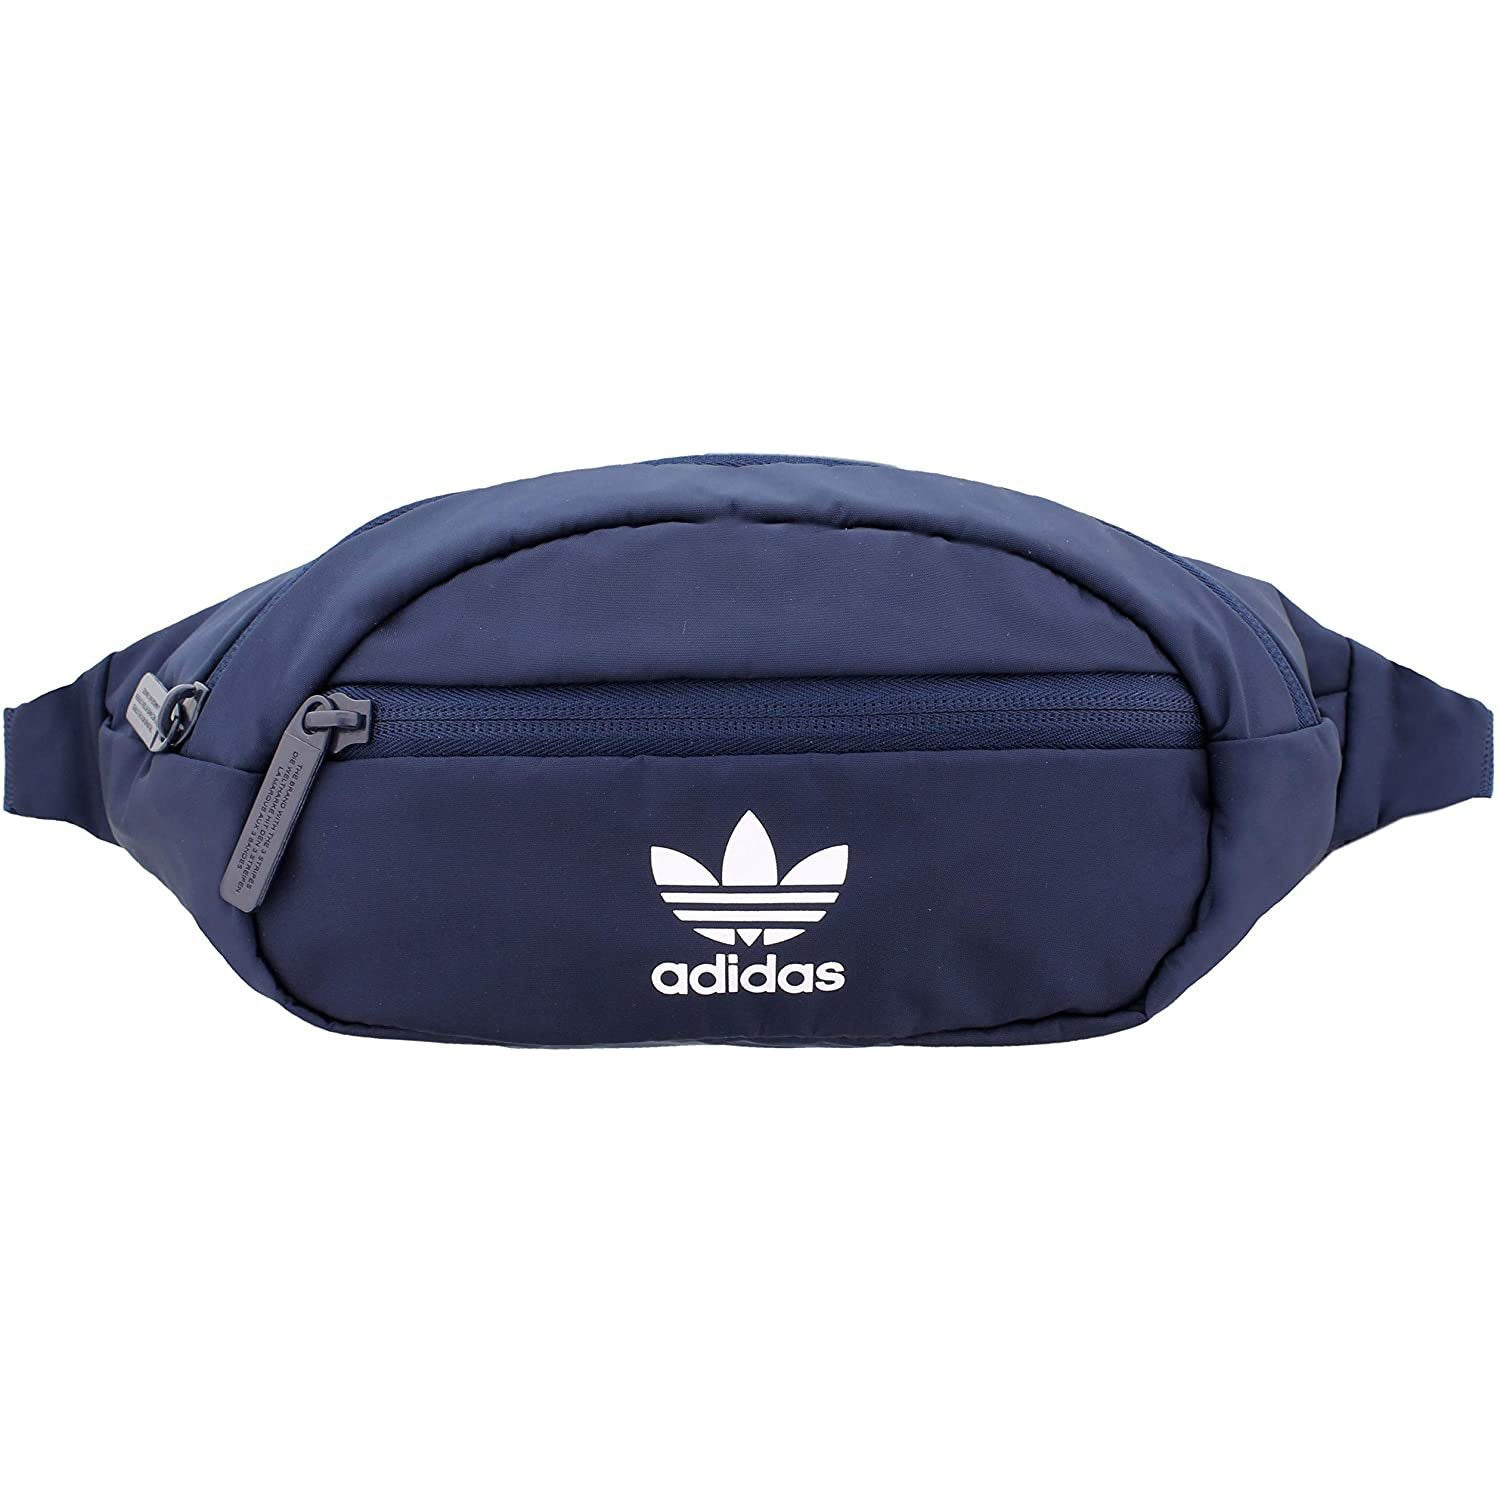 adidas Originals Unisex-Adult National Waist Pack/Fanny Pack/Travel Bag